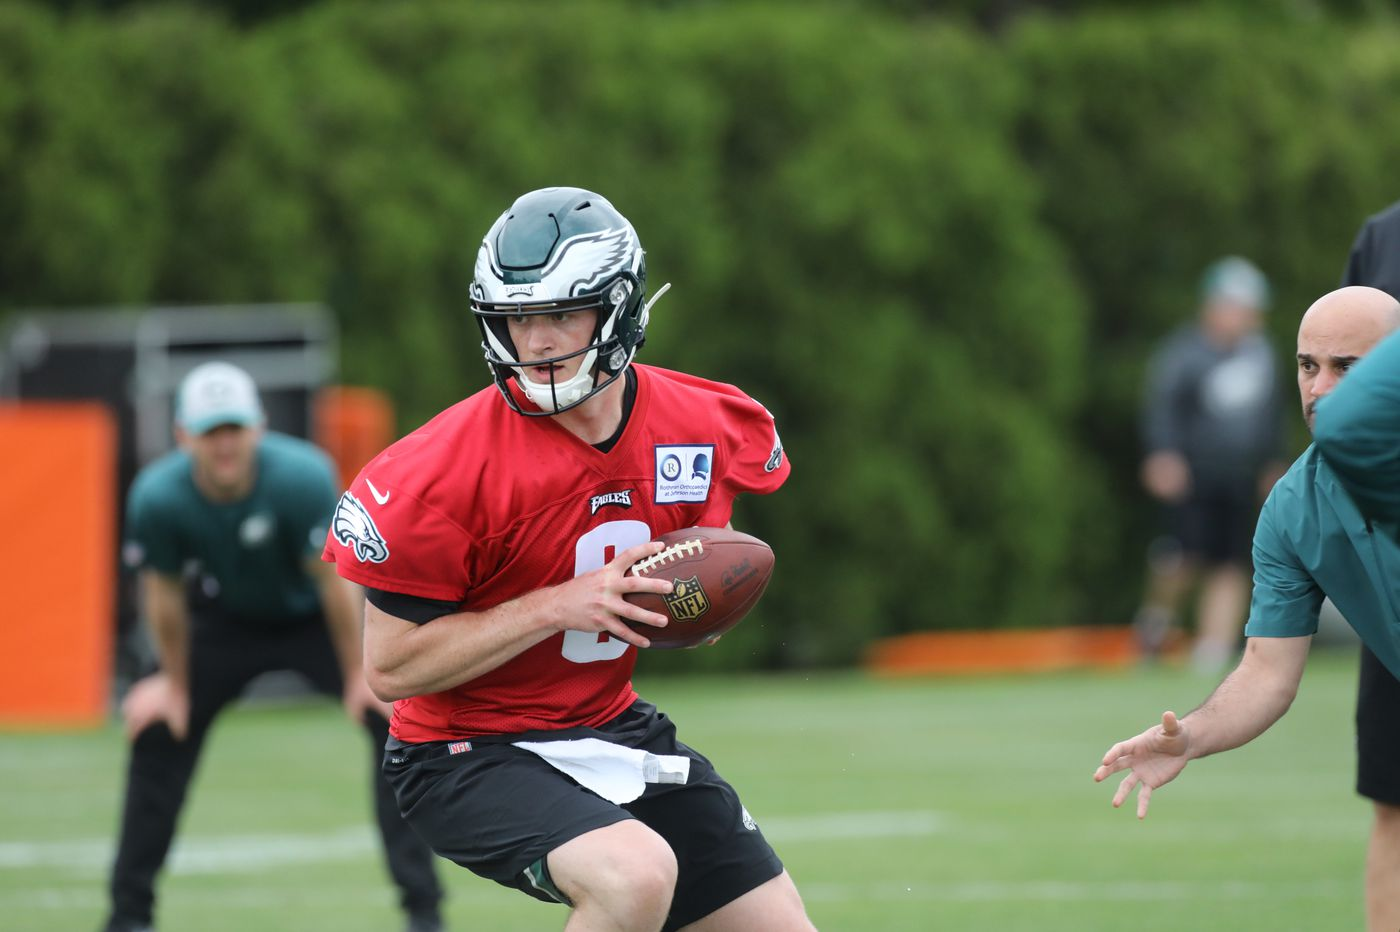 From record-setter to reserve, Clayton Thorson is first quarterback draft pick for Eagles to develop since Carson Wentz